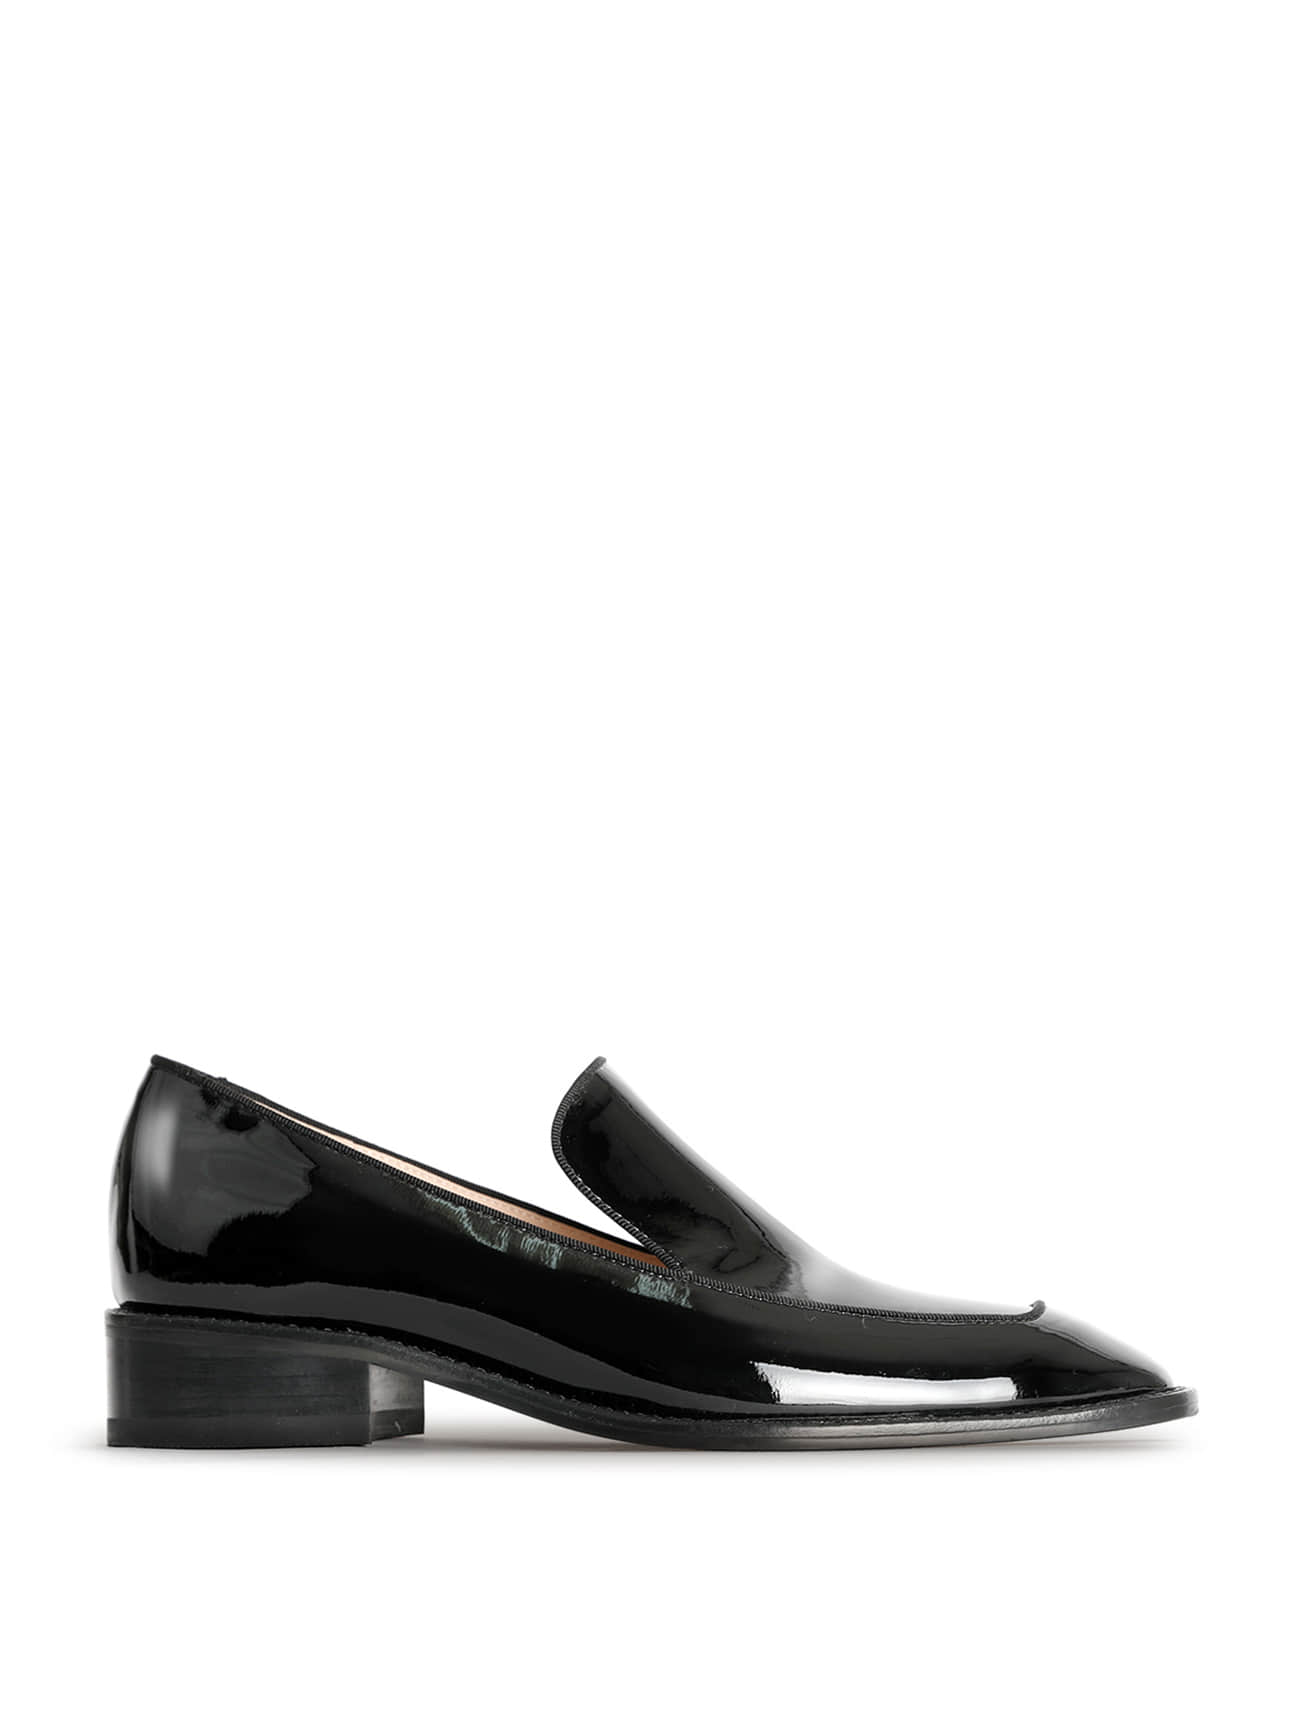 JACKSON PATENT-LEATHER LOAFERS - BLACK (3cm)